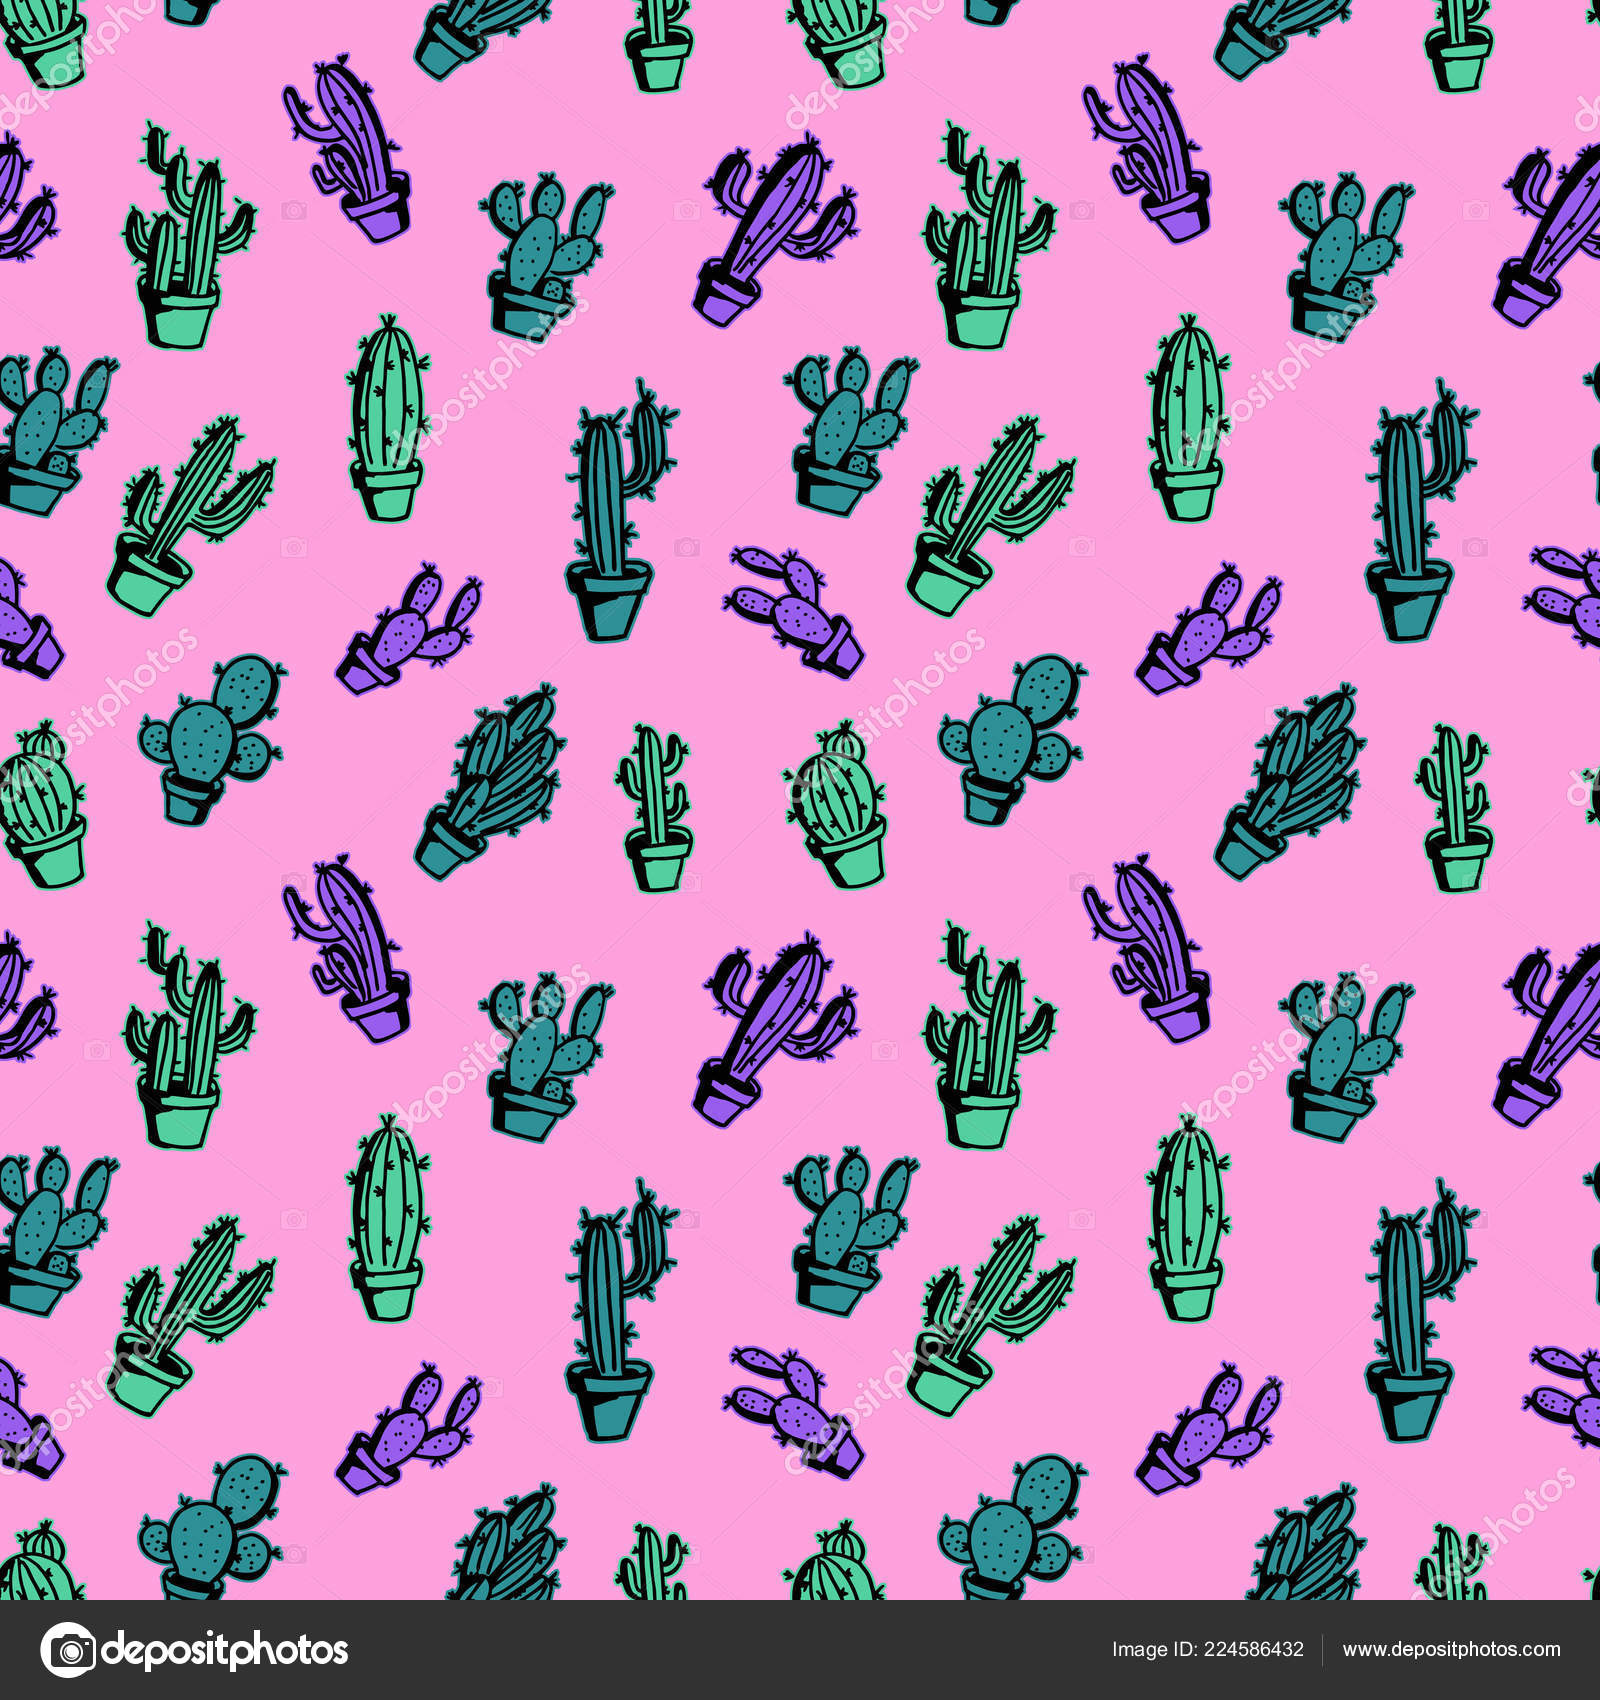 Cactus Trendy Pastel Colorful Seamless Pattern Cute Background